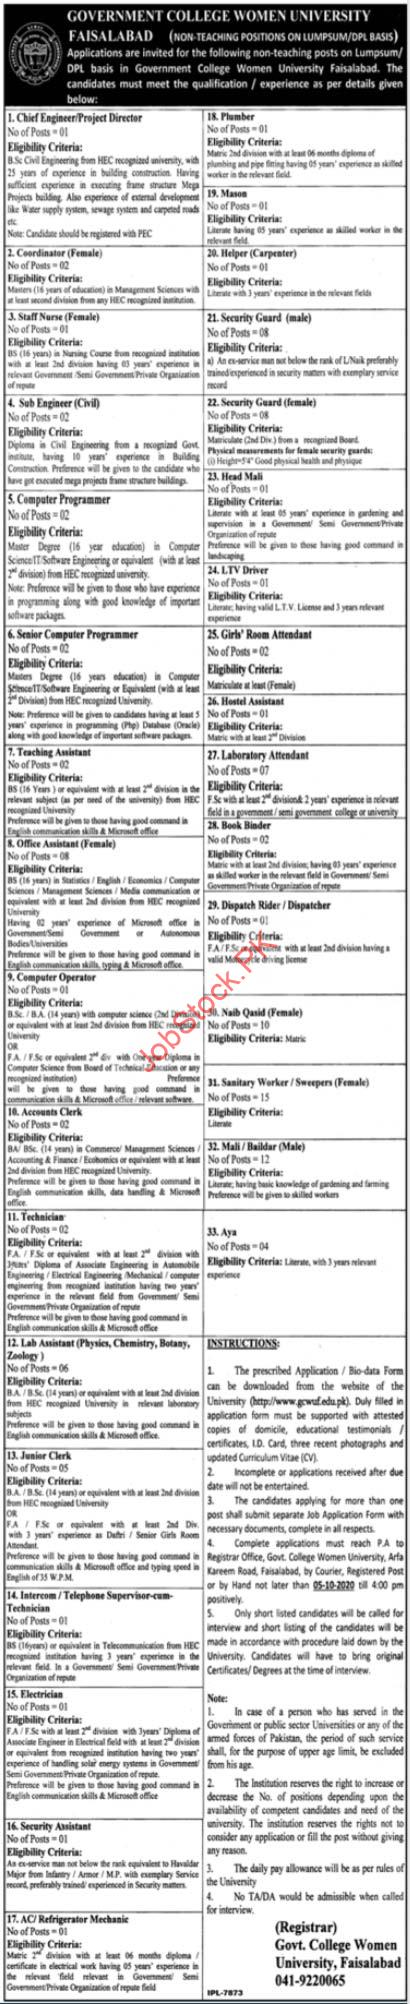 Government College University Faisalabad Gcuf Jobs 2020